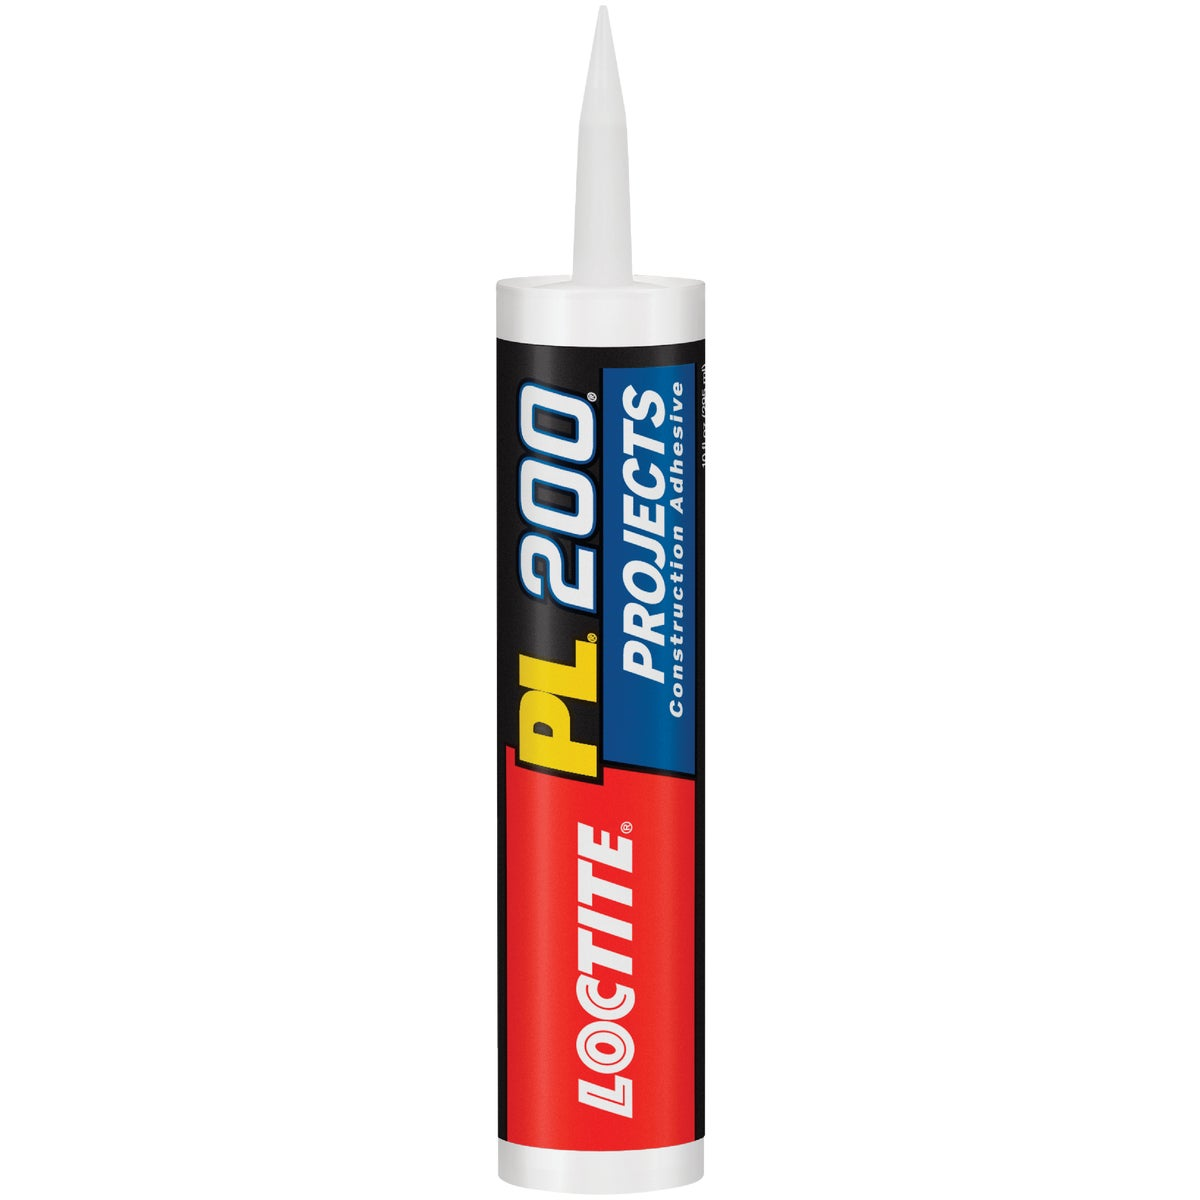 10OZ PL200V CON ADHESIVE - 1390603 by Henkel Corporation